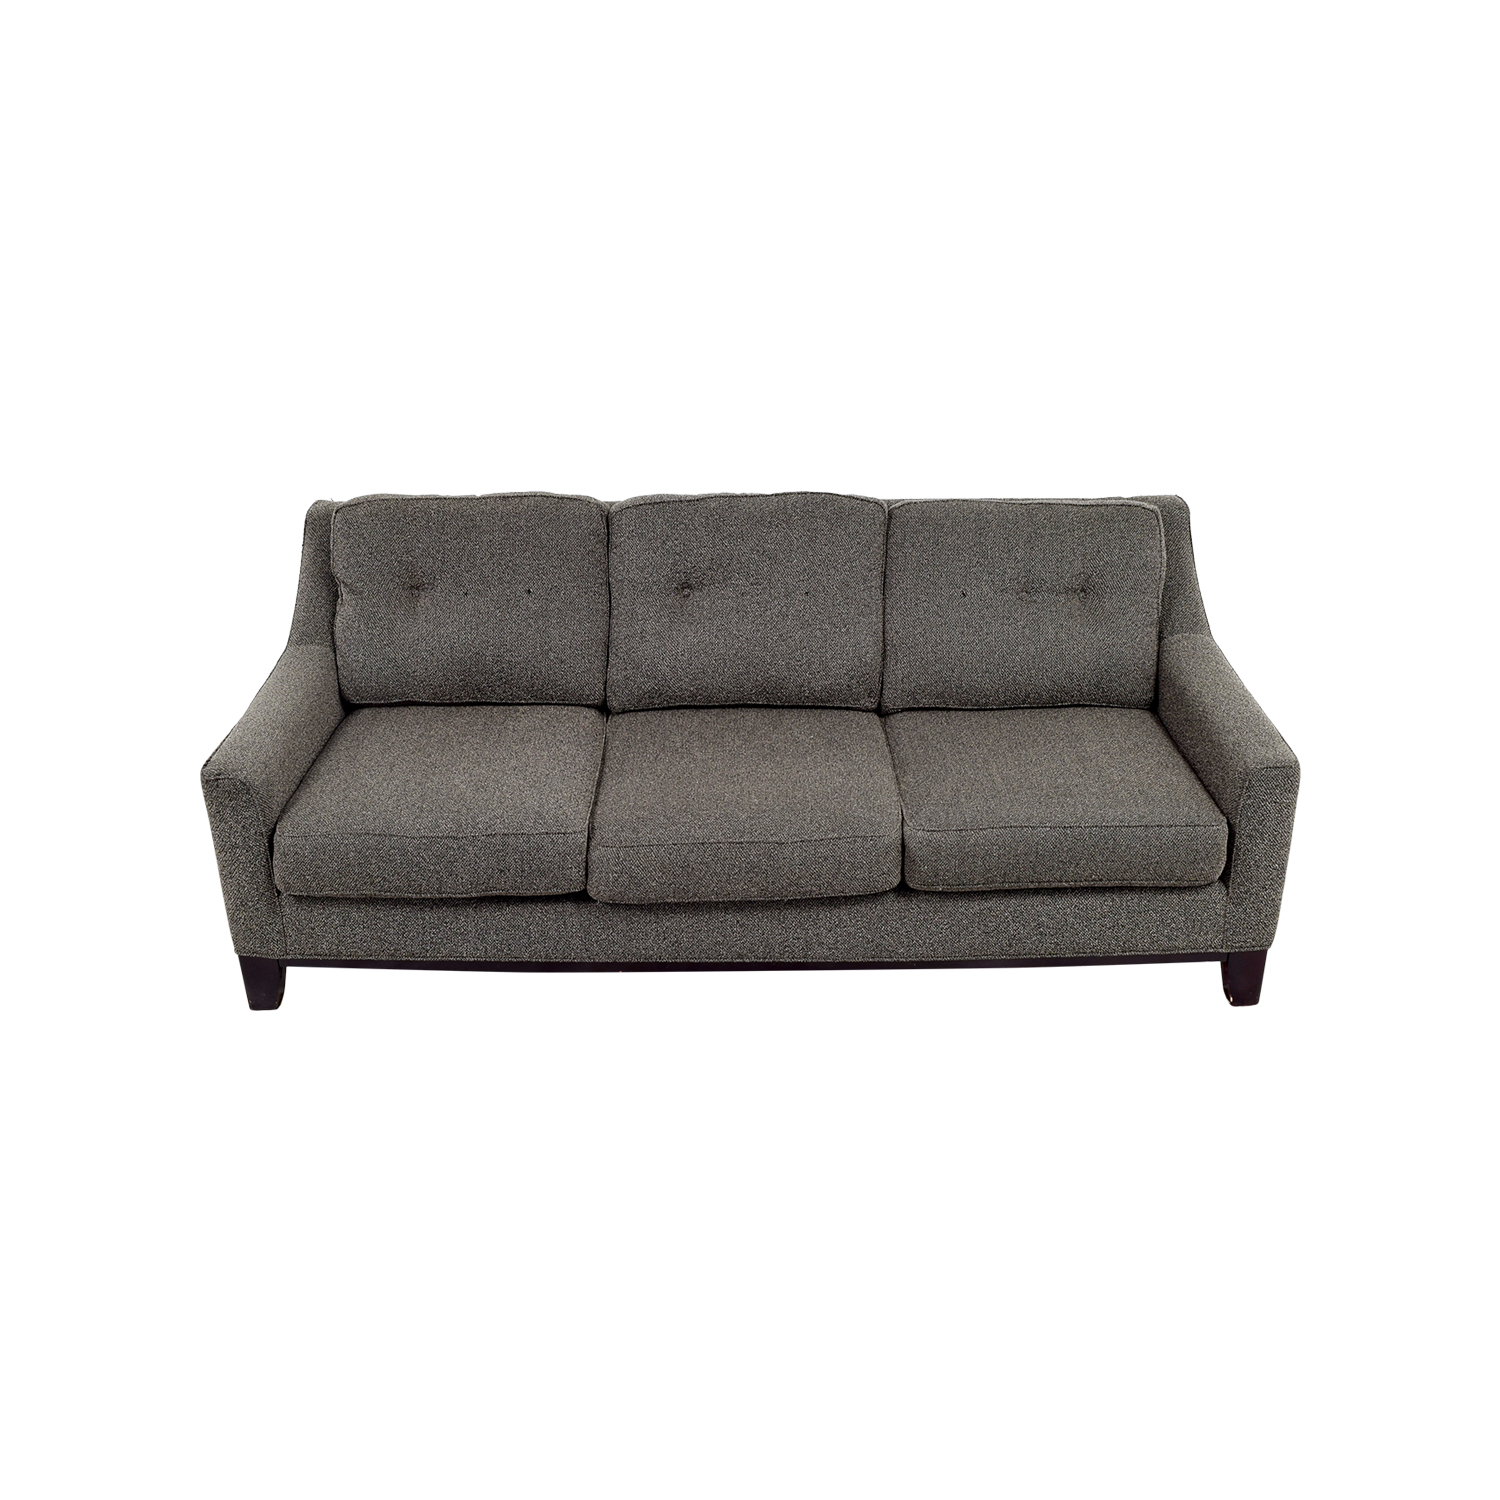 85% OFF   Cindy Crawford Home CIndy Crawford Home Grey Woven Fabric 3 Seat  Sofa / Sofas